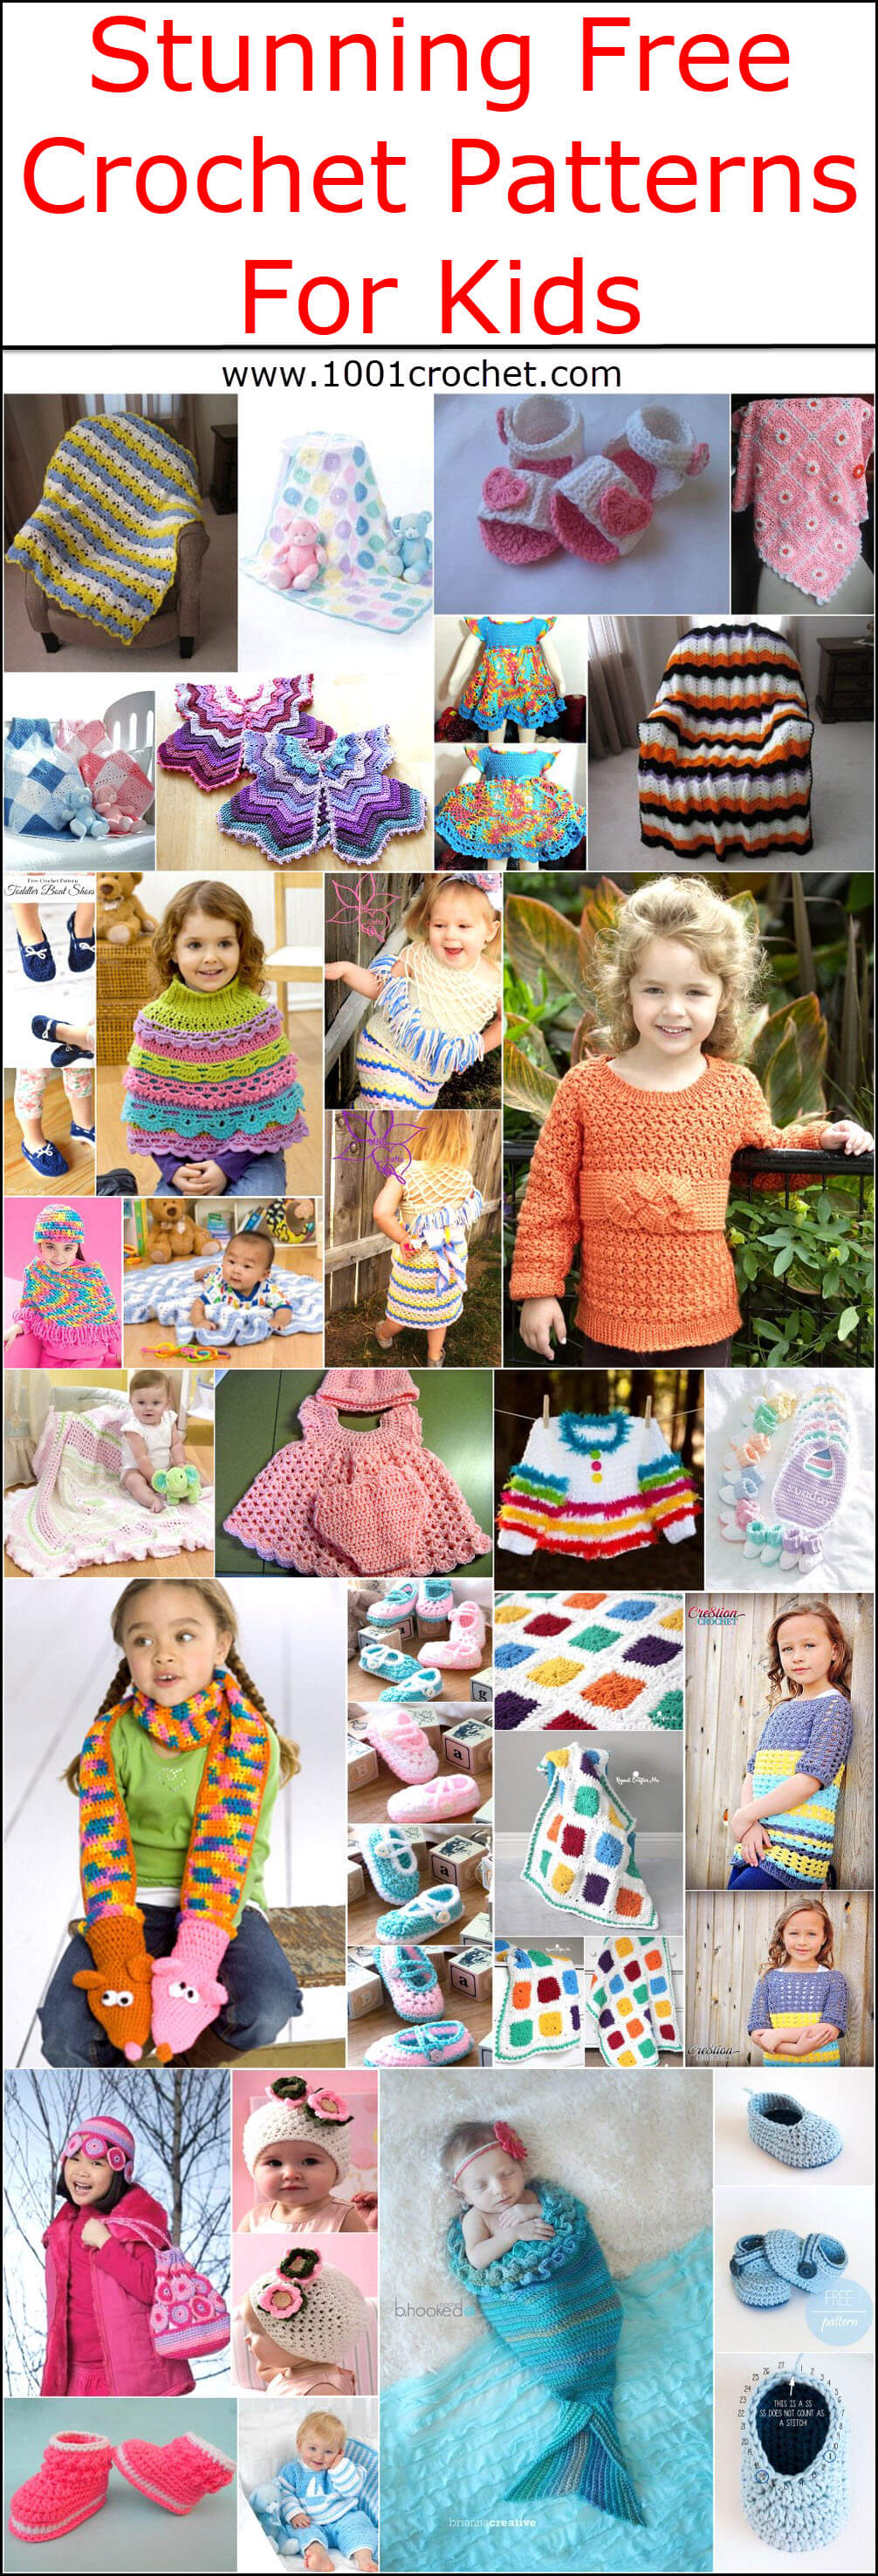 Stunning Free Crochet Patterns For Kids